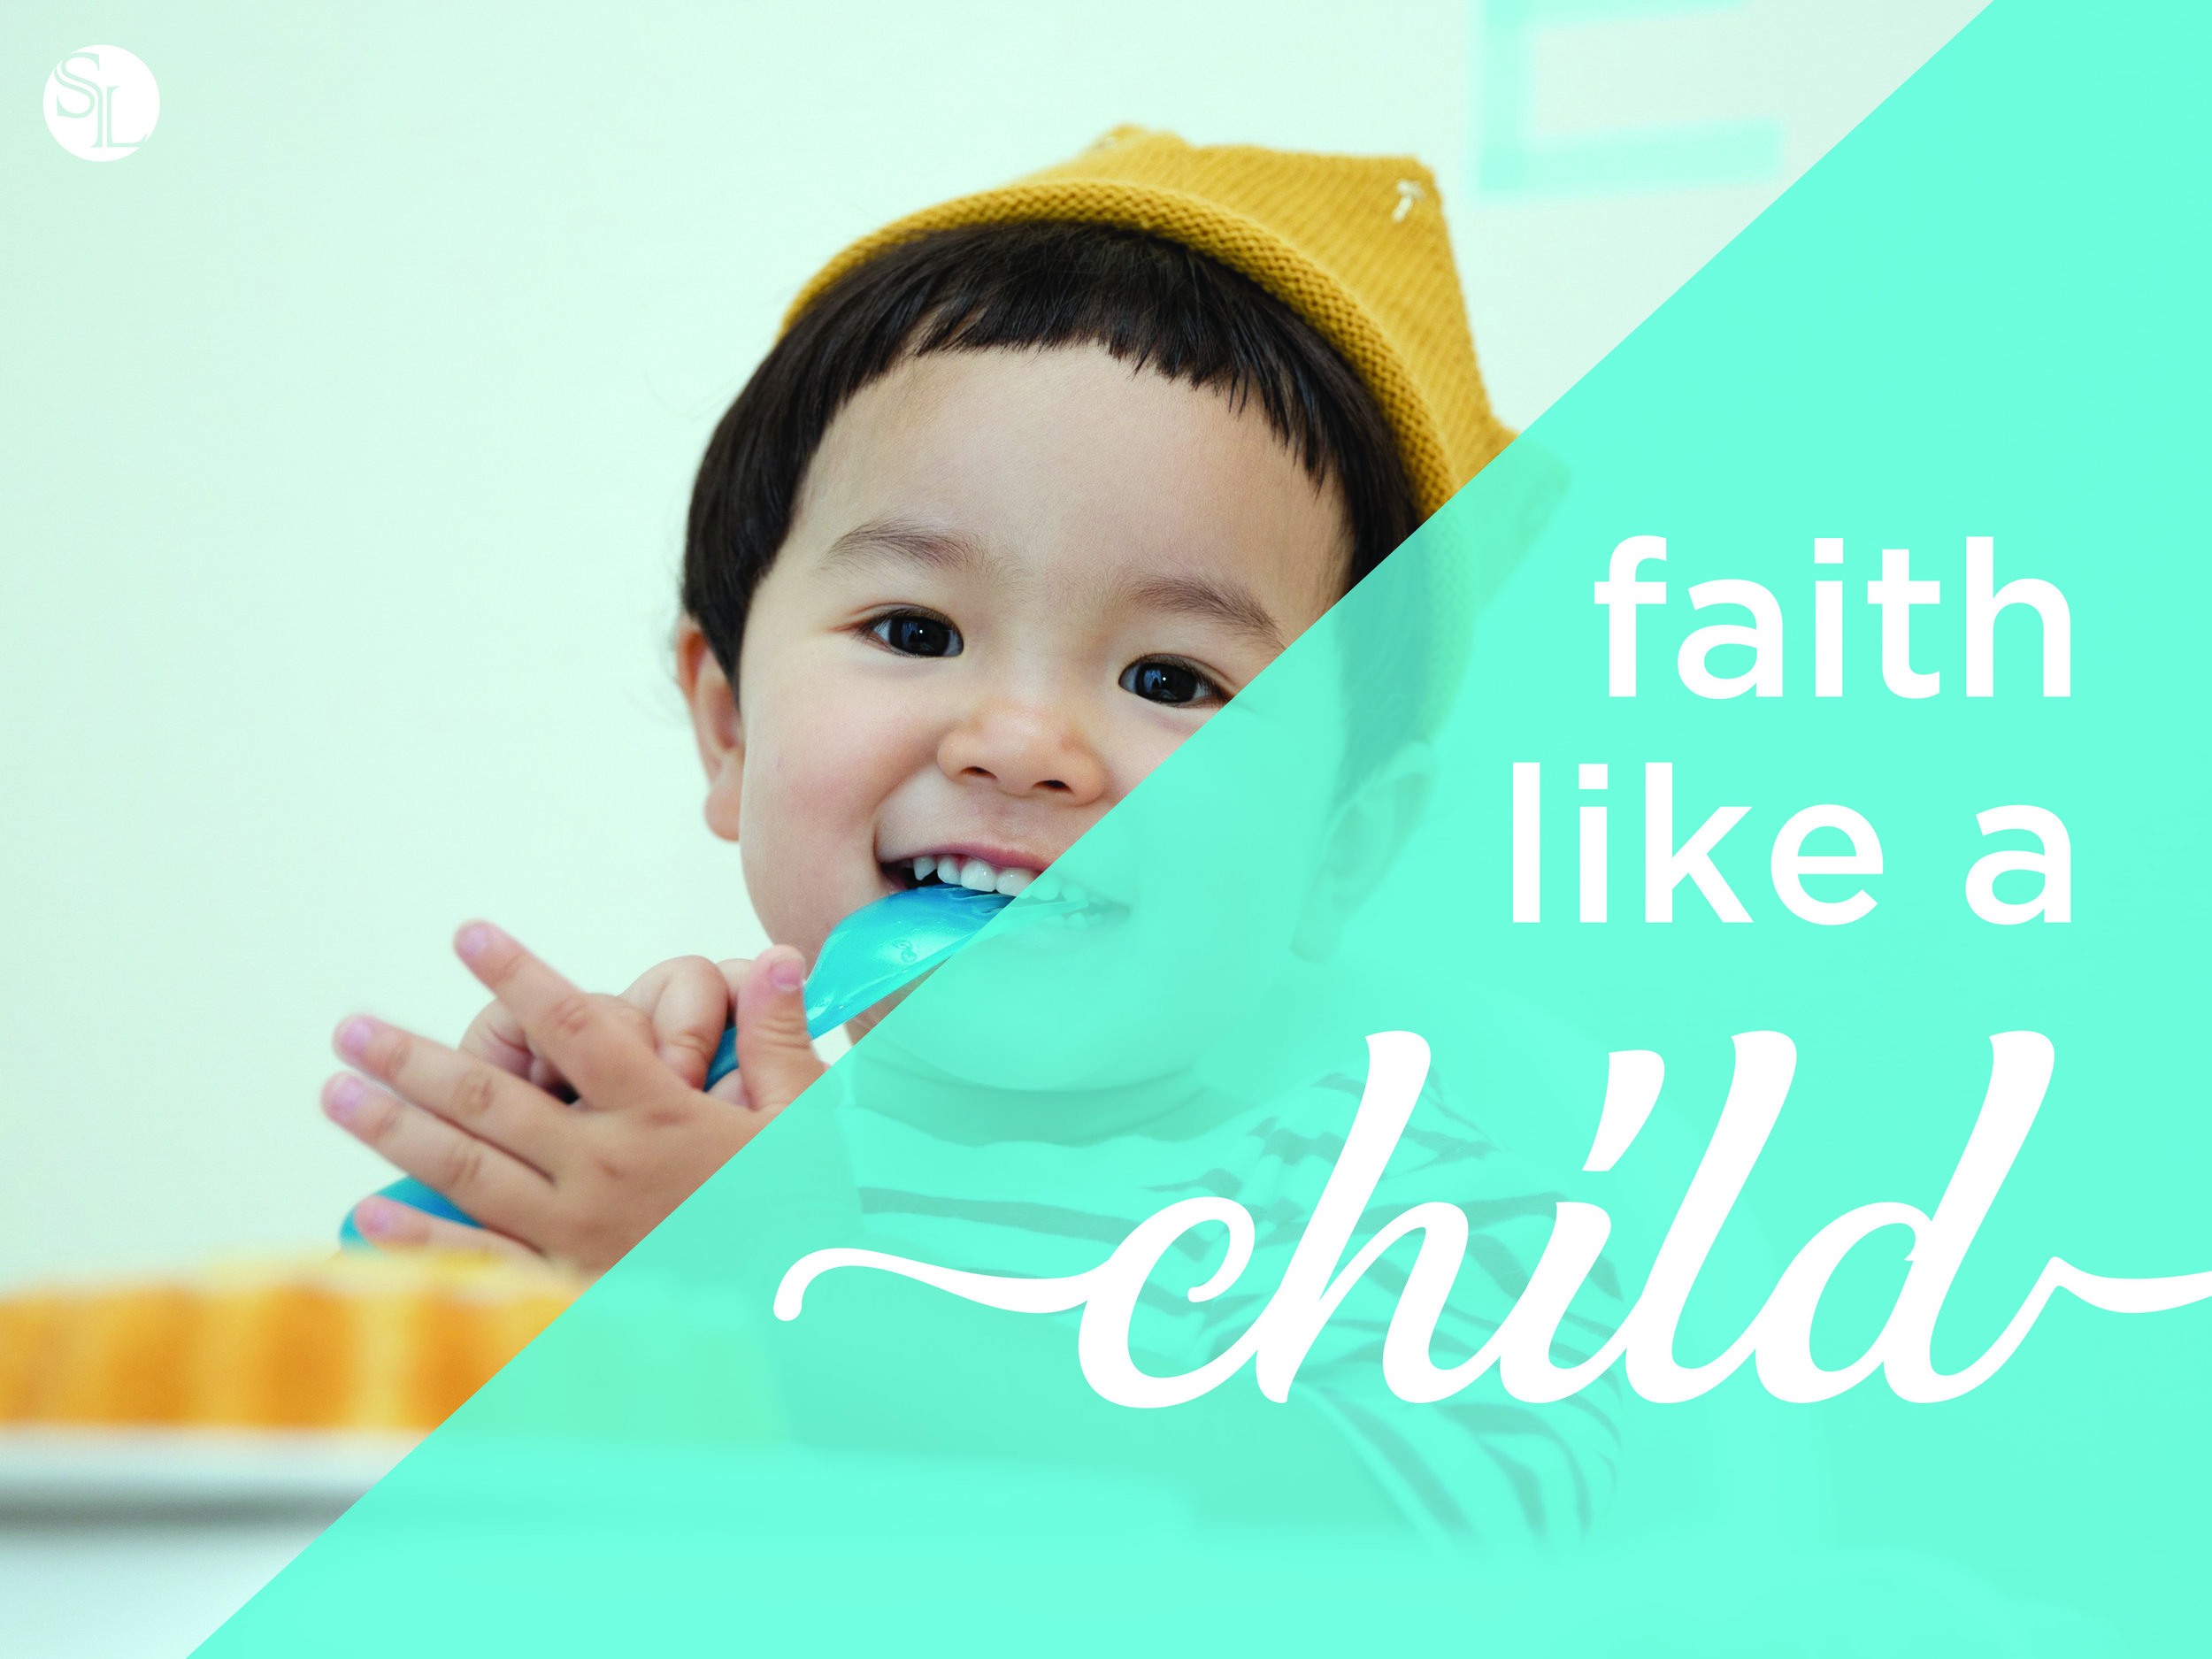 Faith like a child-2 title.jpg